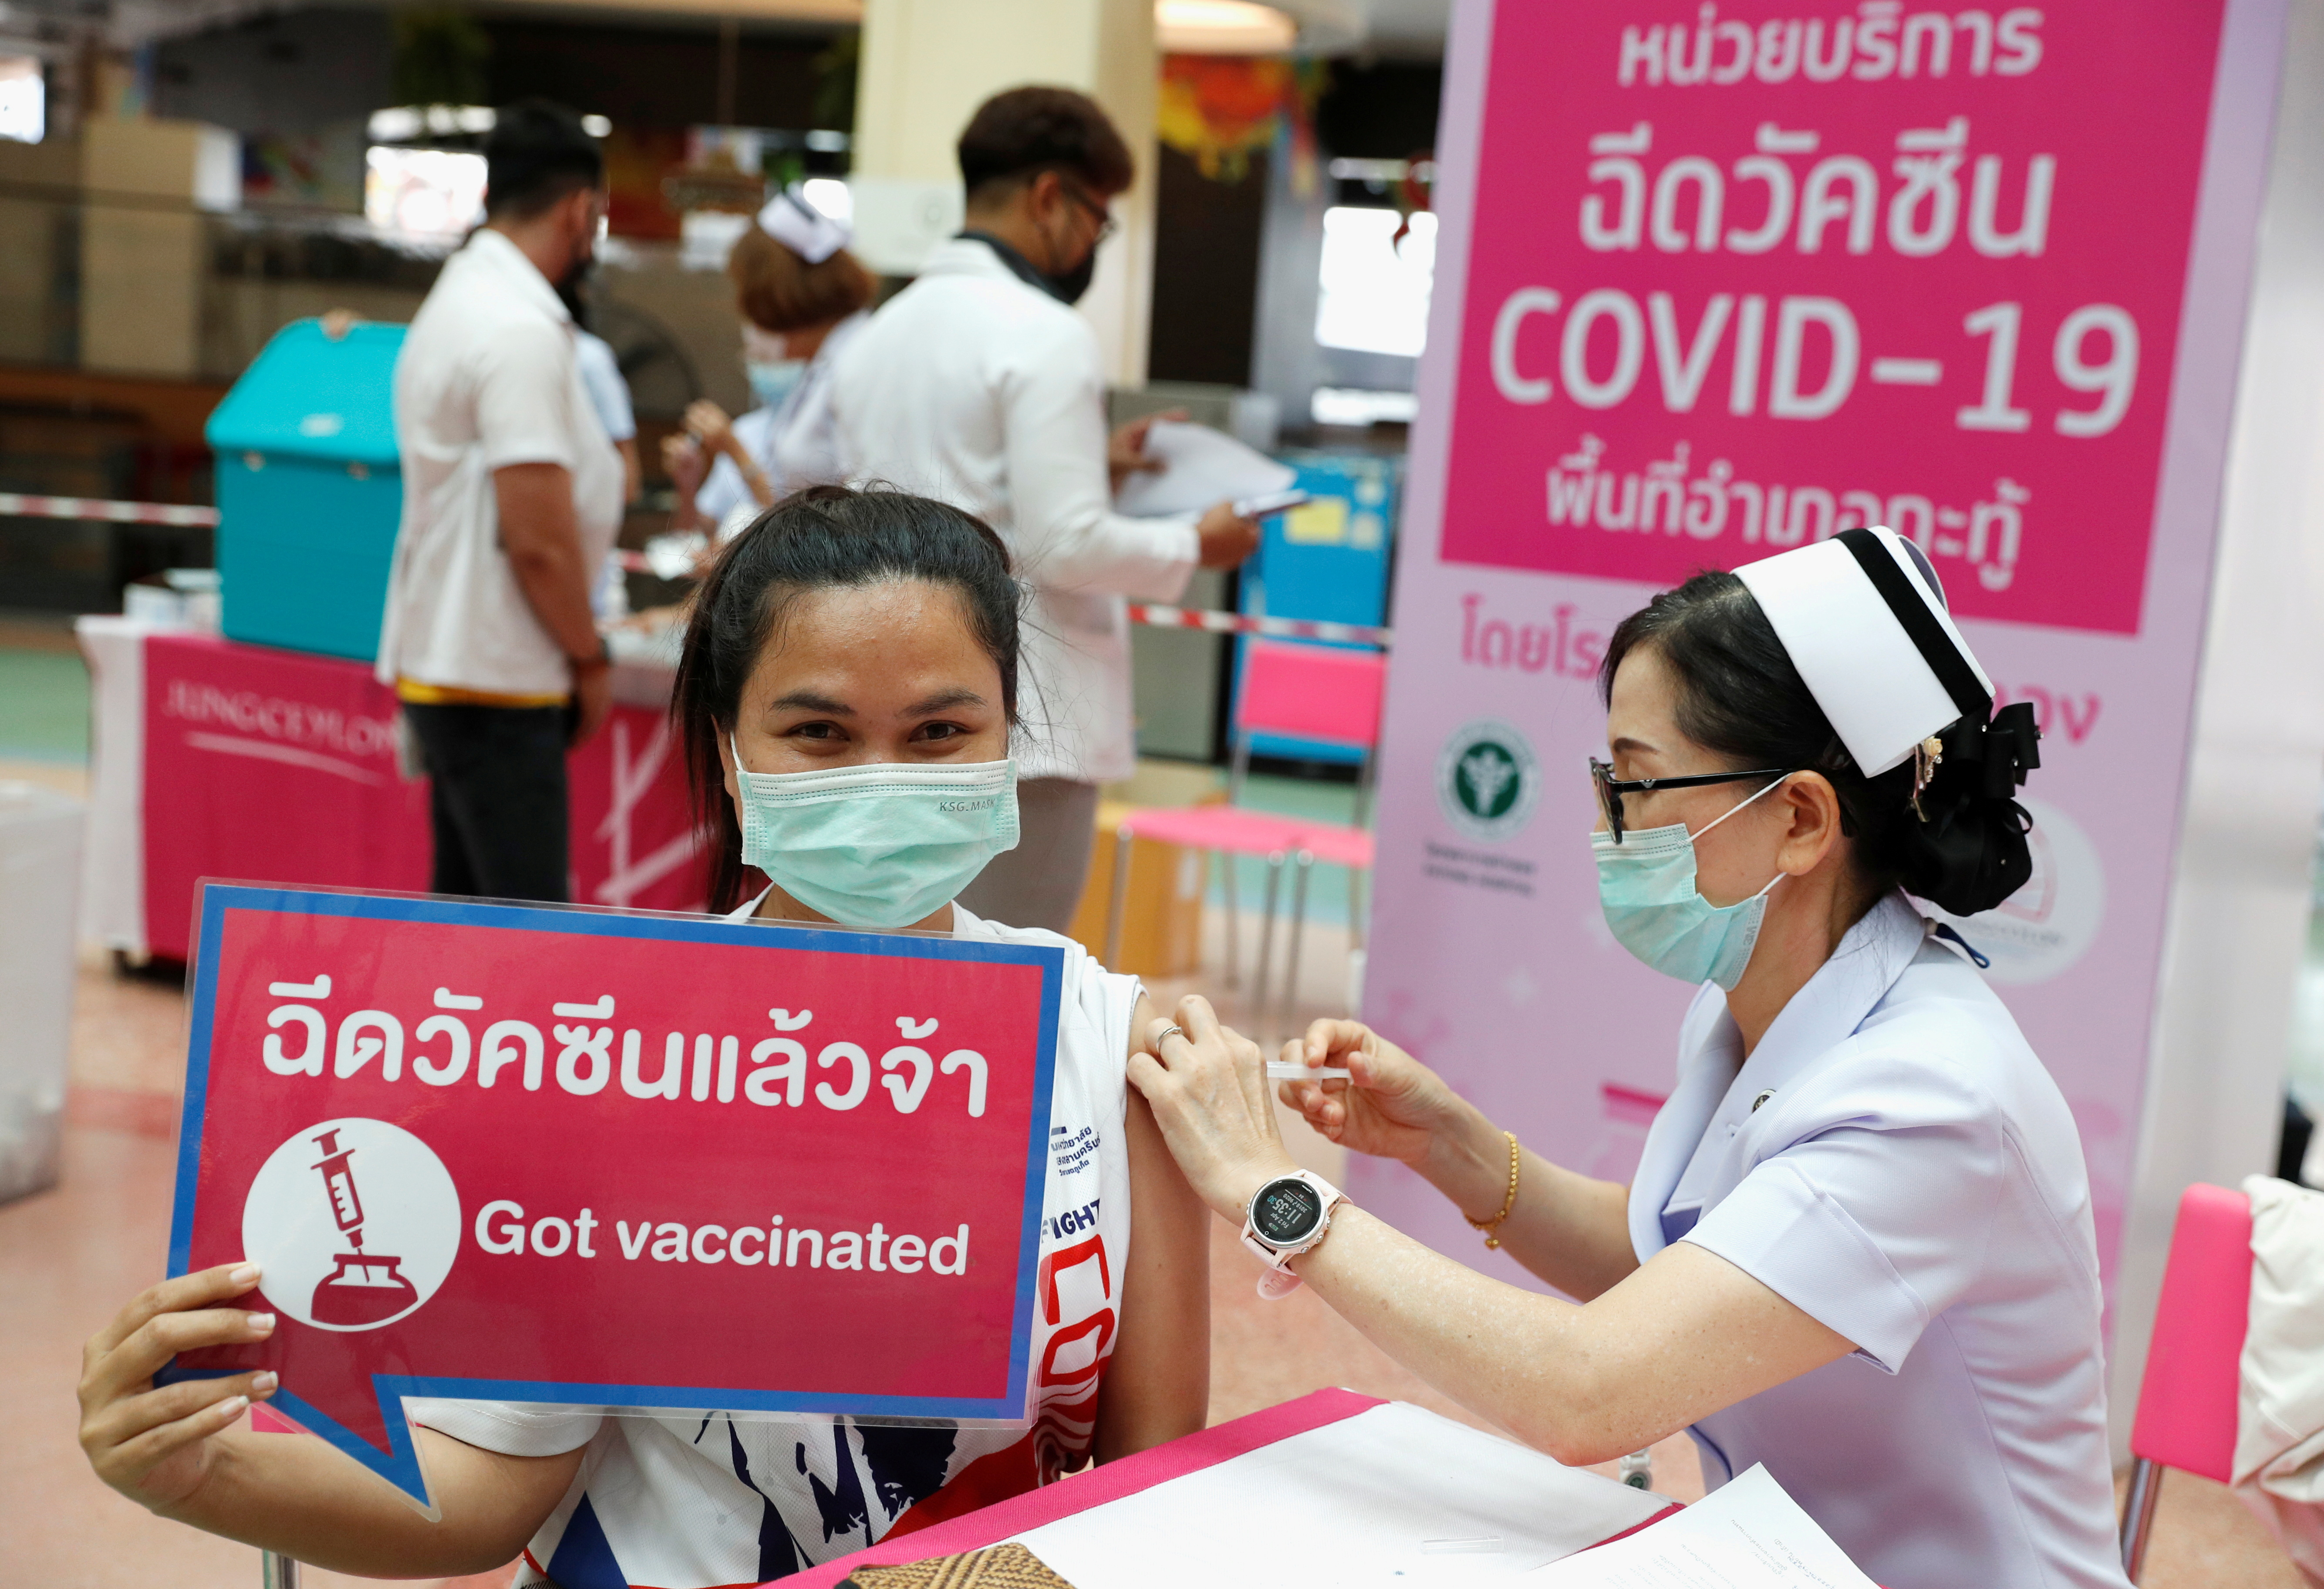 People receive the Sinovac COVID-19 vaccine as the Thai resort island of Phuket rushes to vaccinate its population amid the coronavirus disease (COVID-19) outbreak, and ahead of a July 1 ending of strict quarantine for overseas visitors, to bring back tourism revenue in Phuket, Thailand, April 2, 2021. REUTERS/Jorge Silva